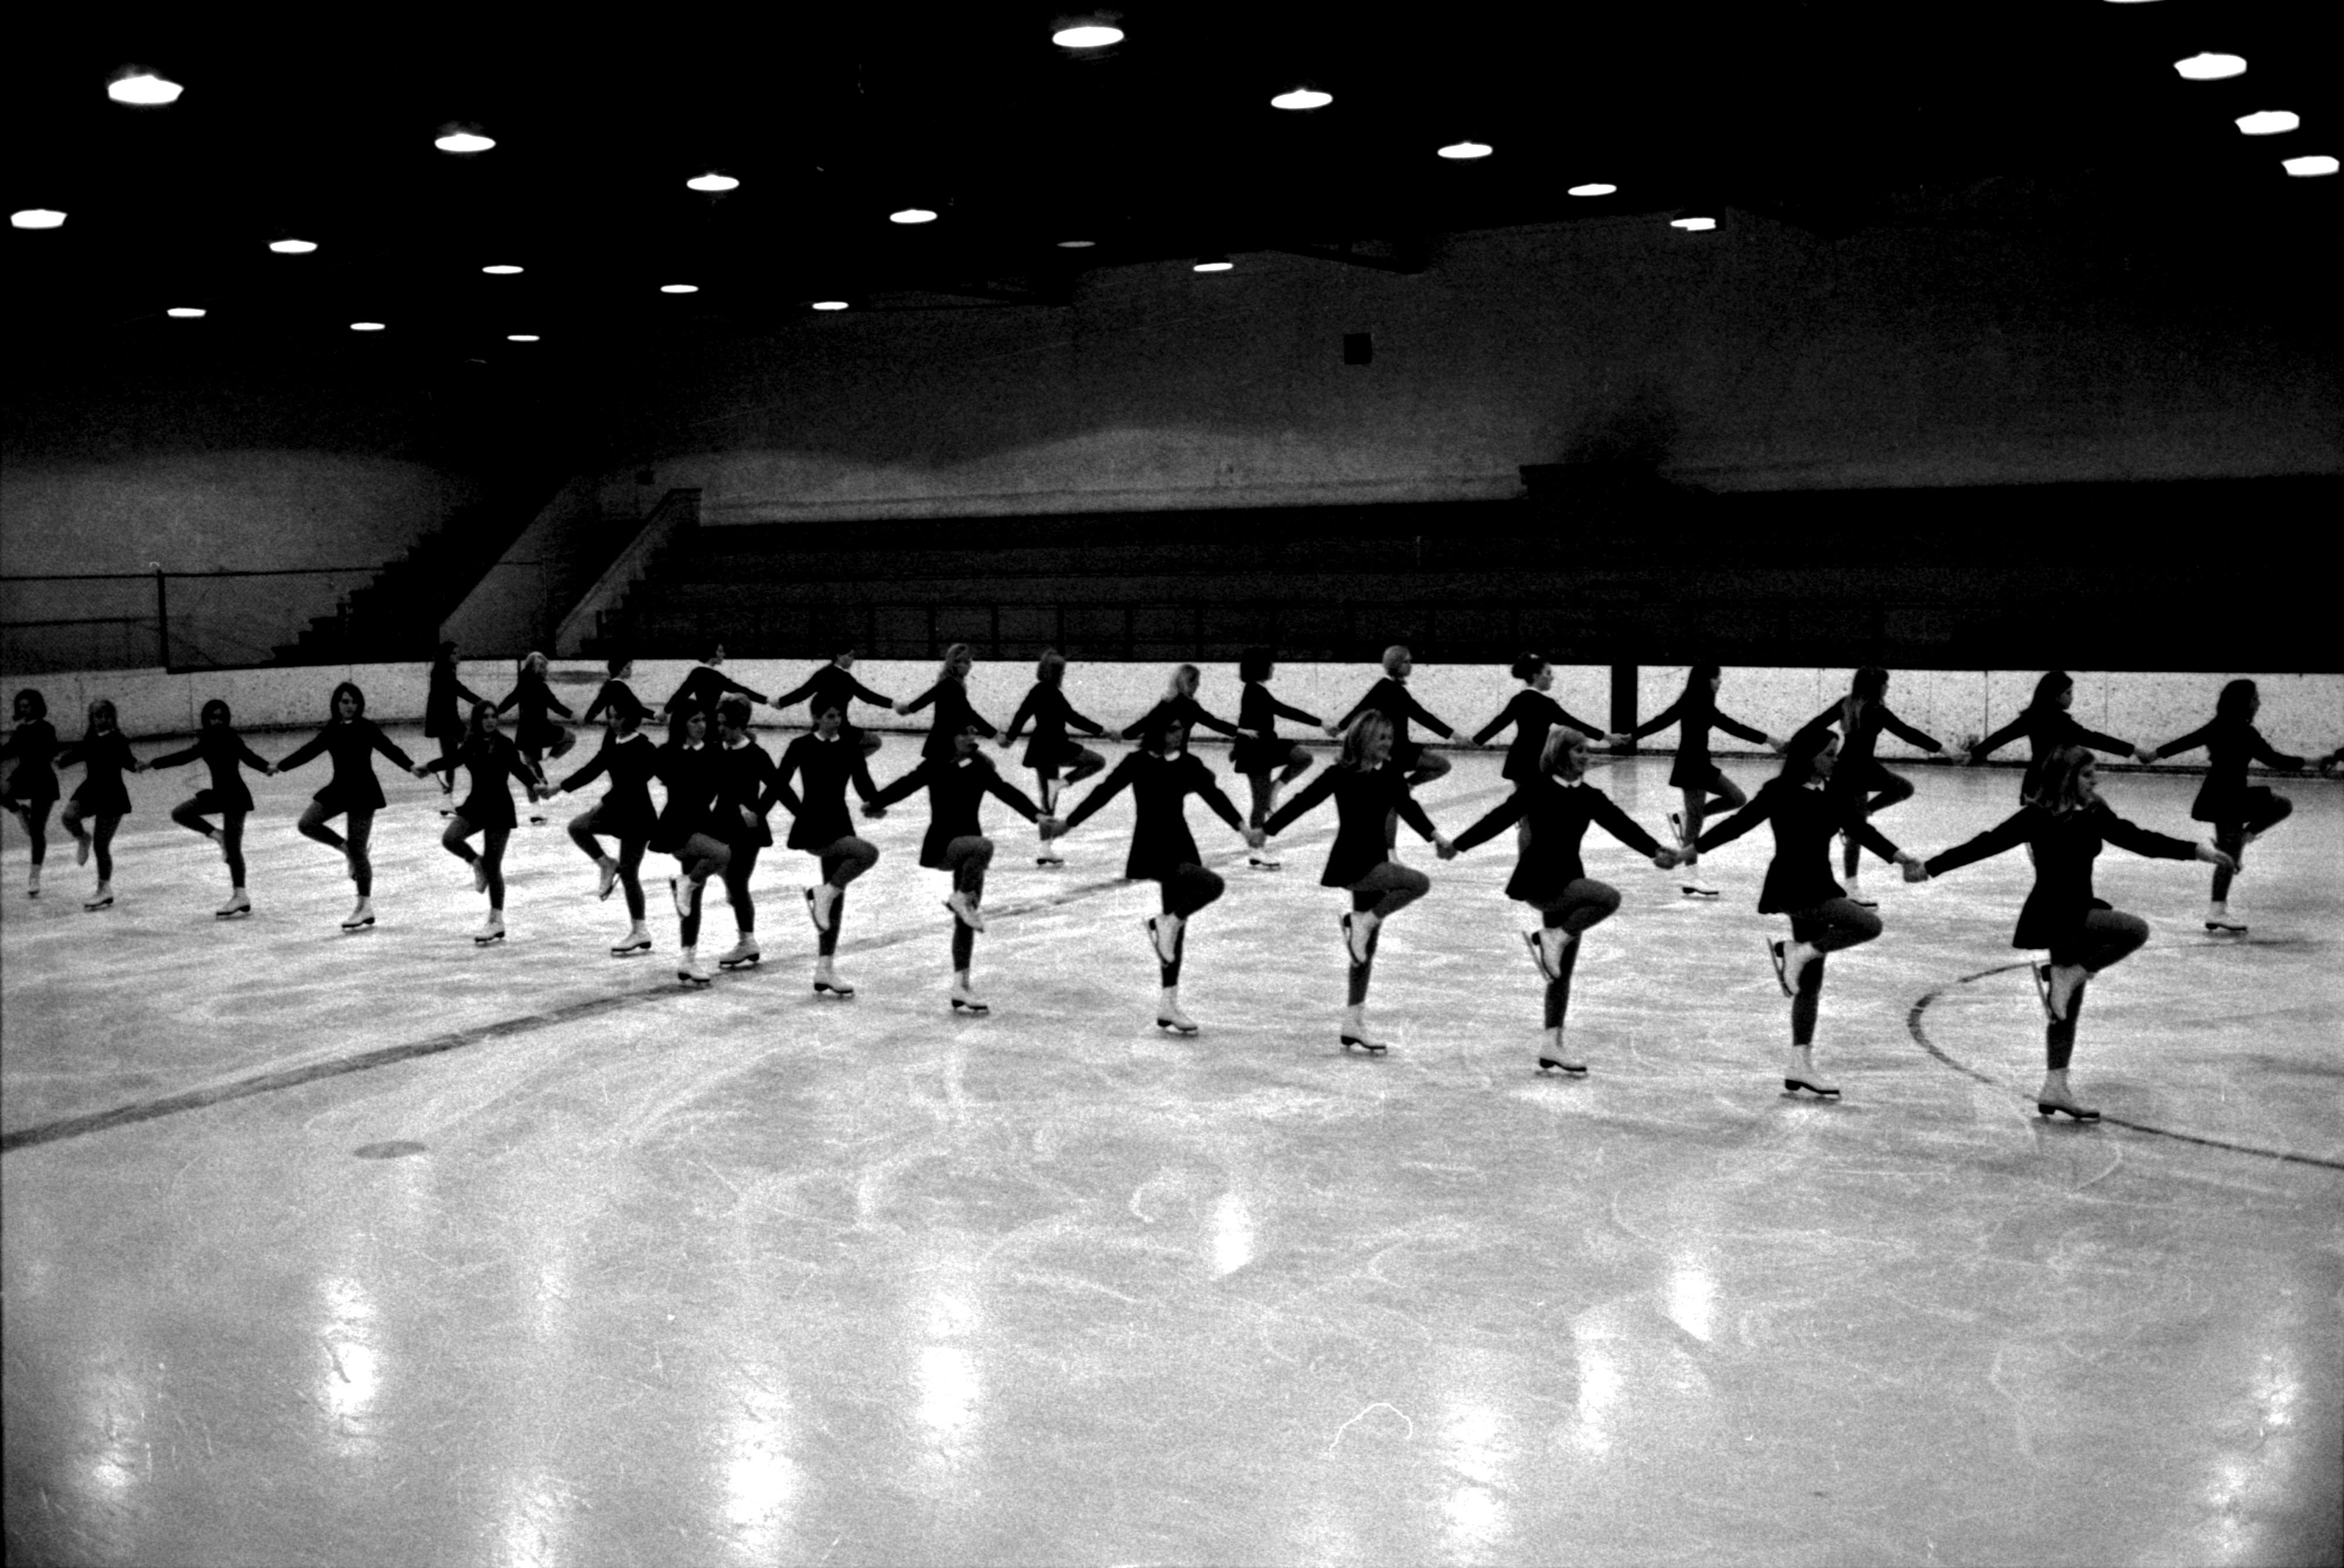 Rehearsal Of Ann Arbor Figure Skating Club Hockettes, February 1969 image